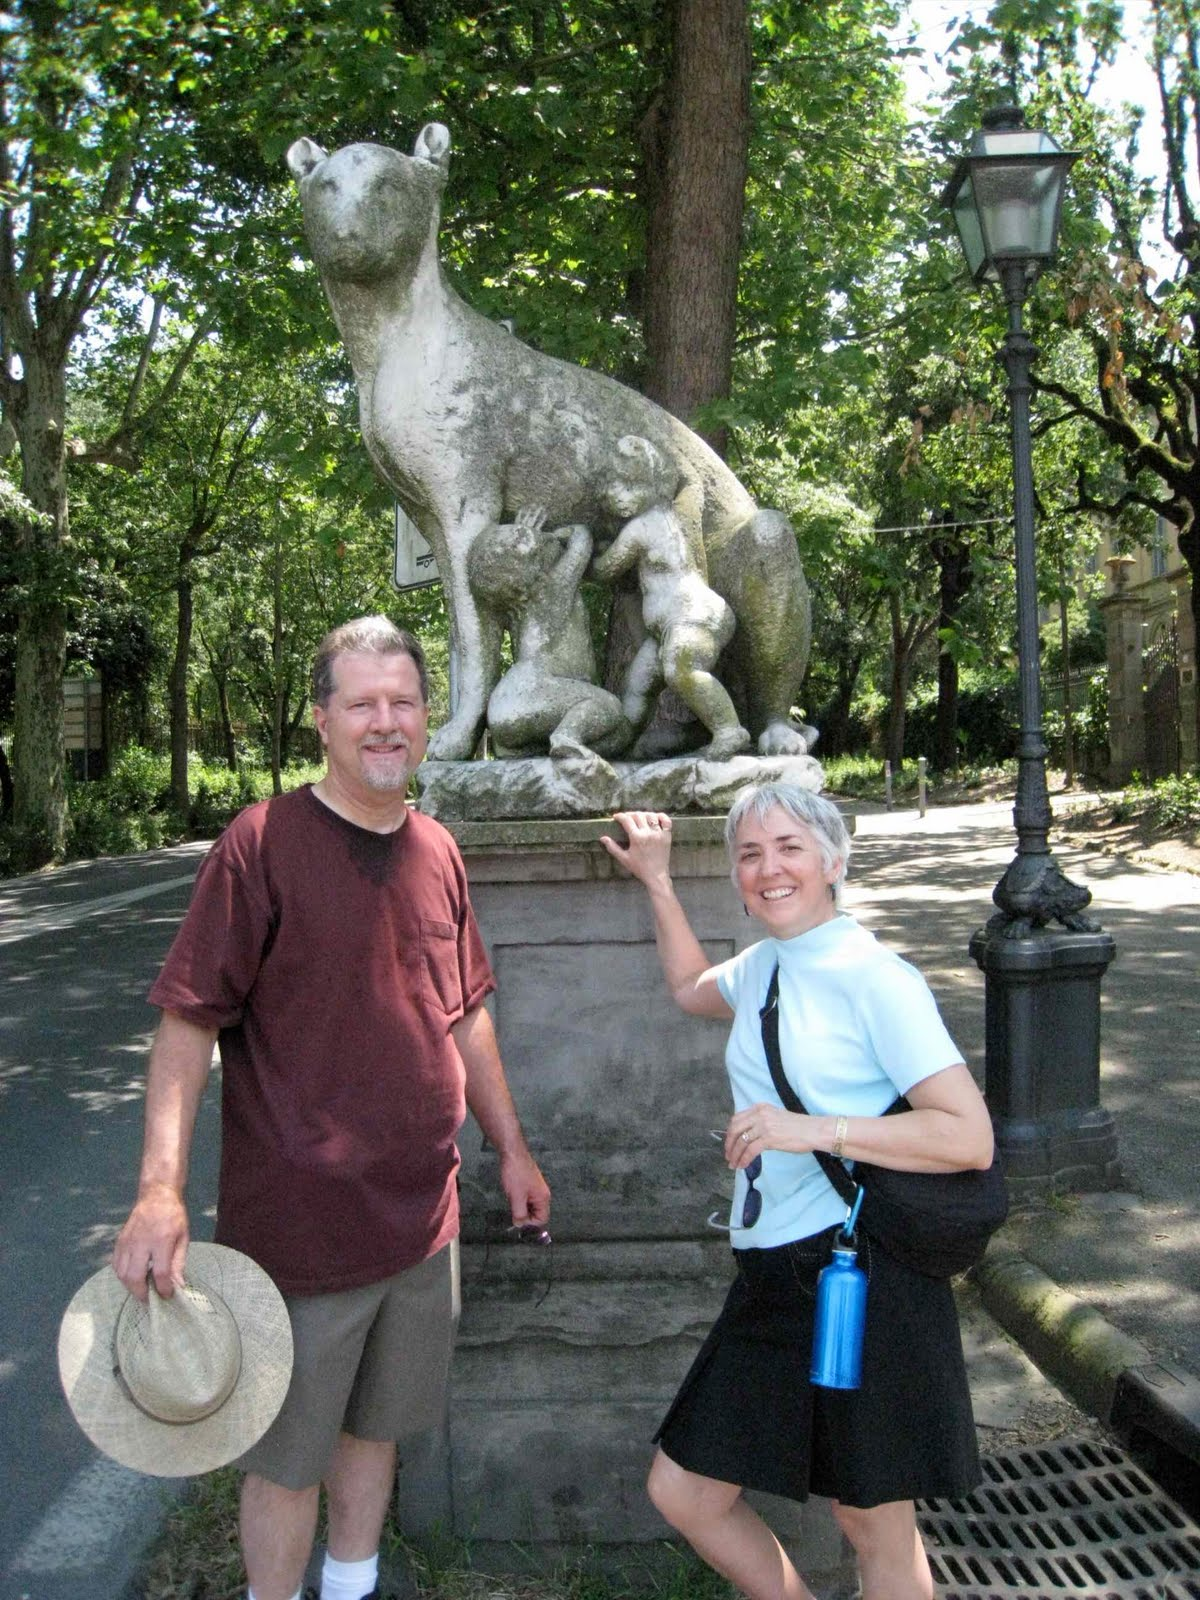 remus dating The story of romulus and remus and historical evidence the recent radiocarbon and thermoluminescence dating imply that the she-wolf was sculptured during the.